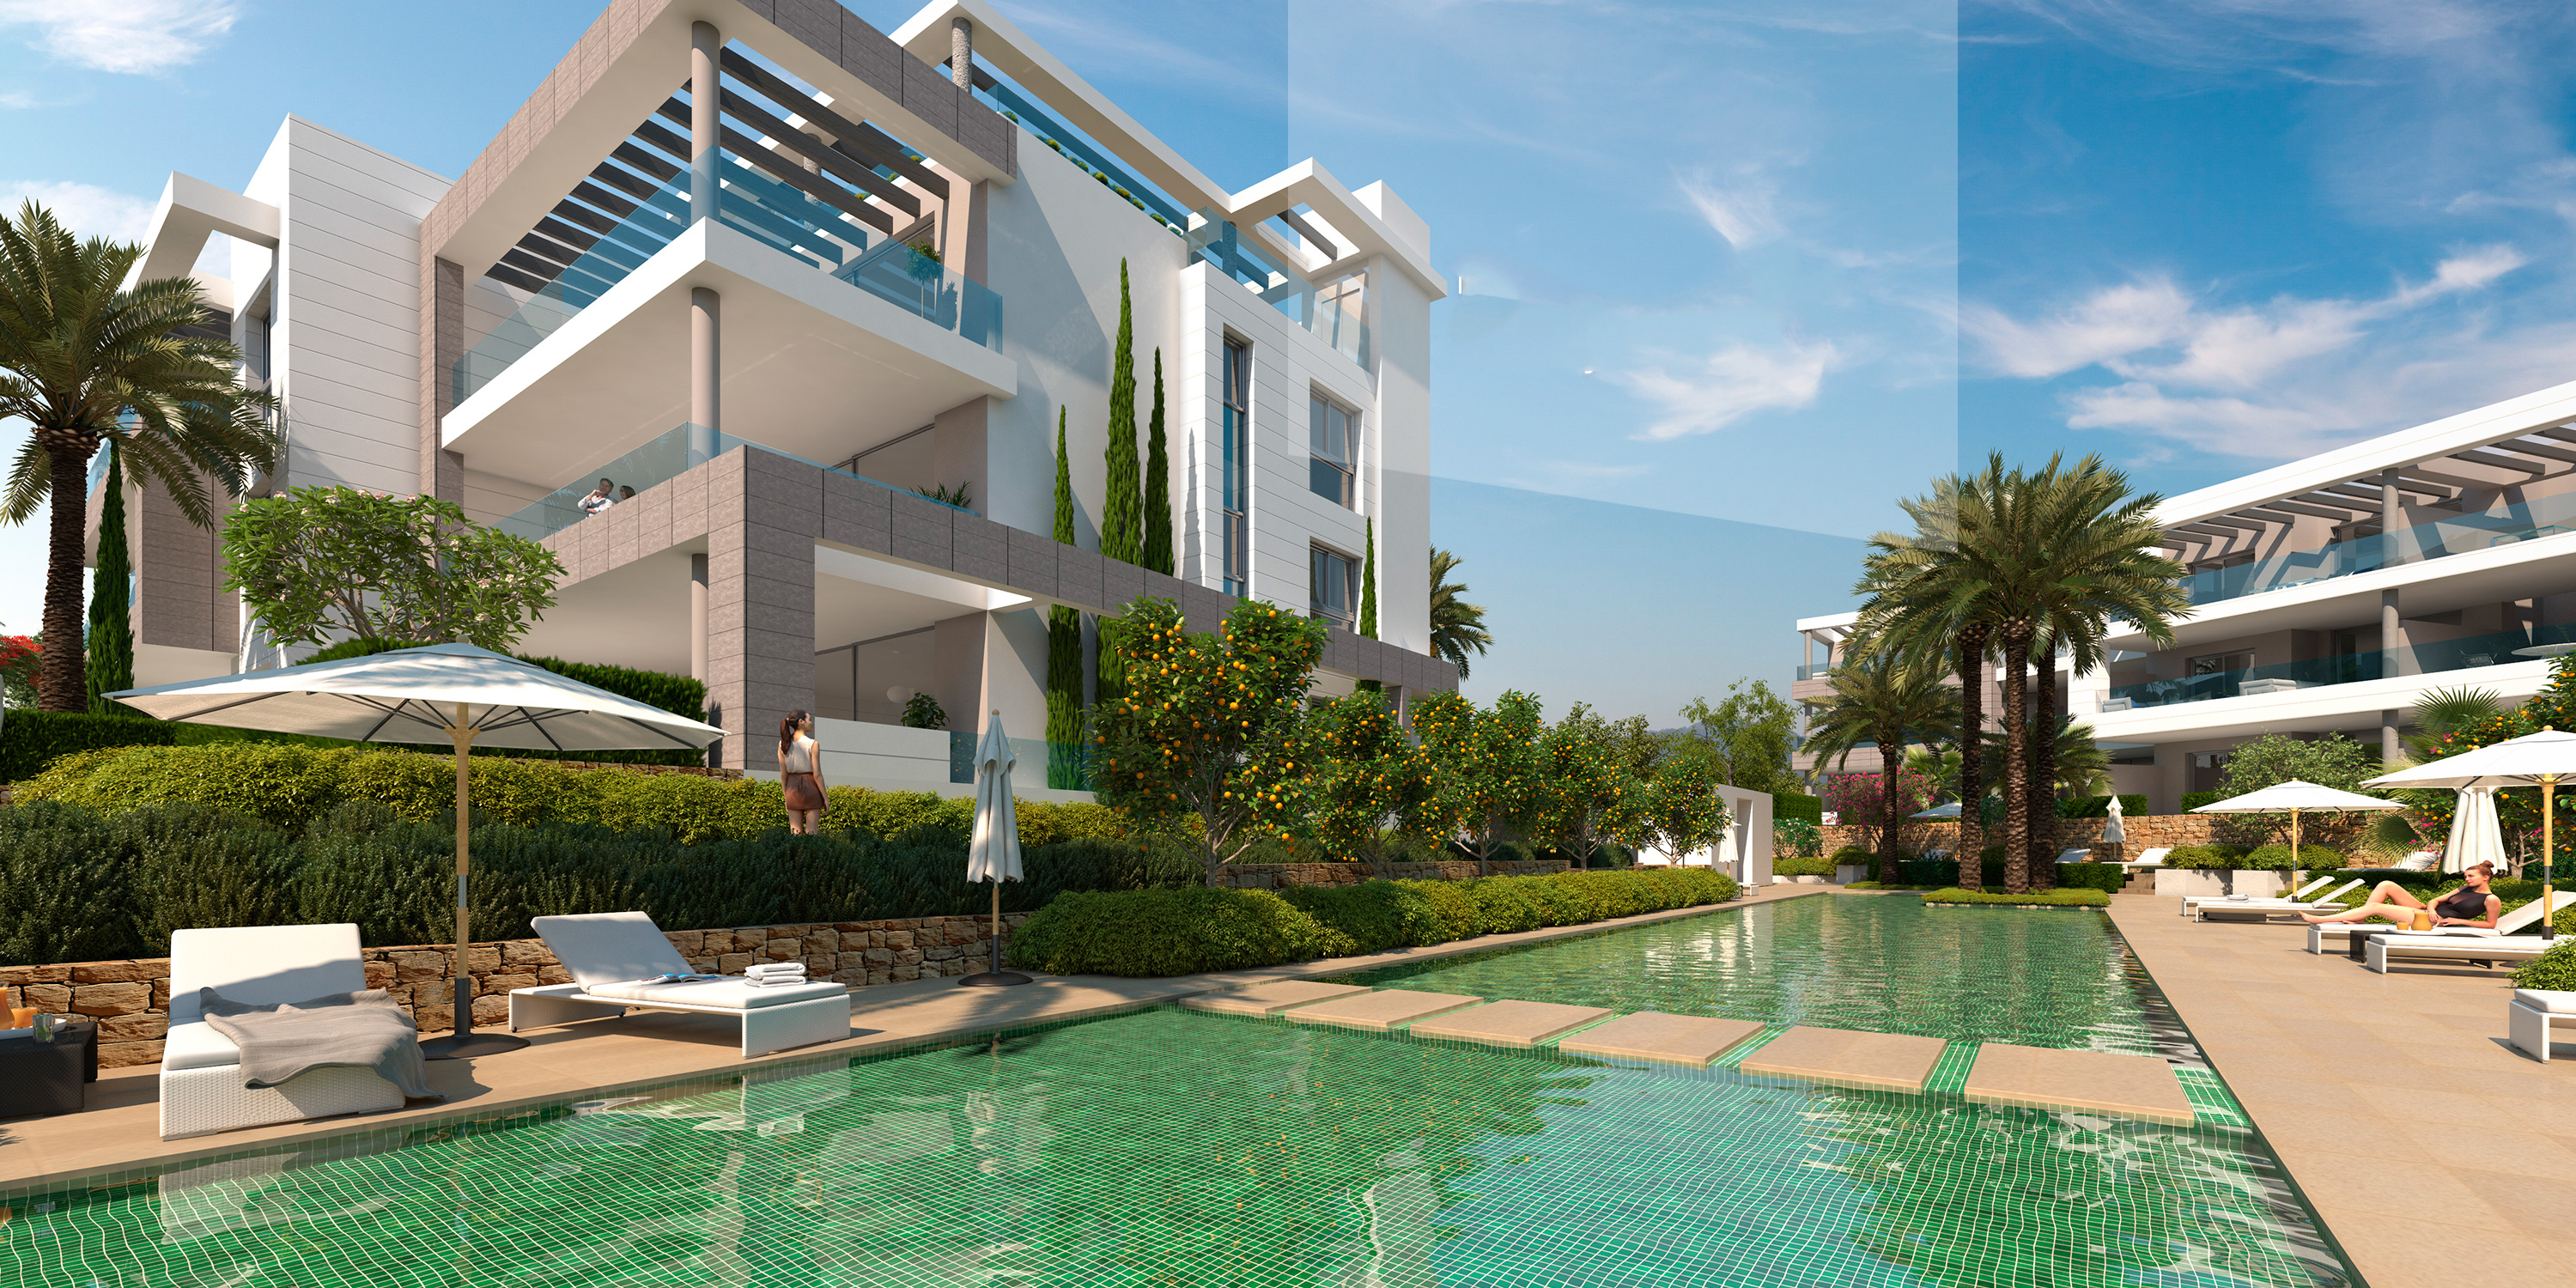 New Modern Style Apartments And Penthouses In A Luxurious Environment In  Marbella.